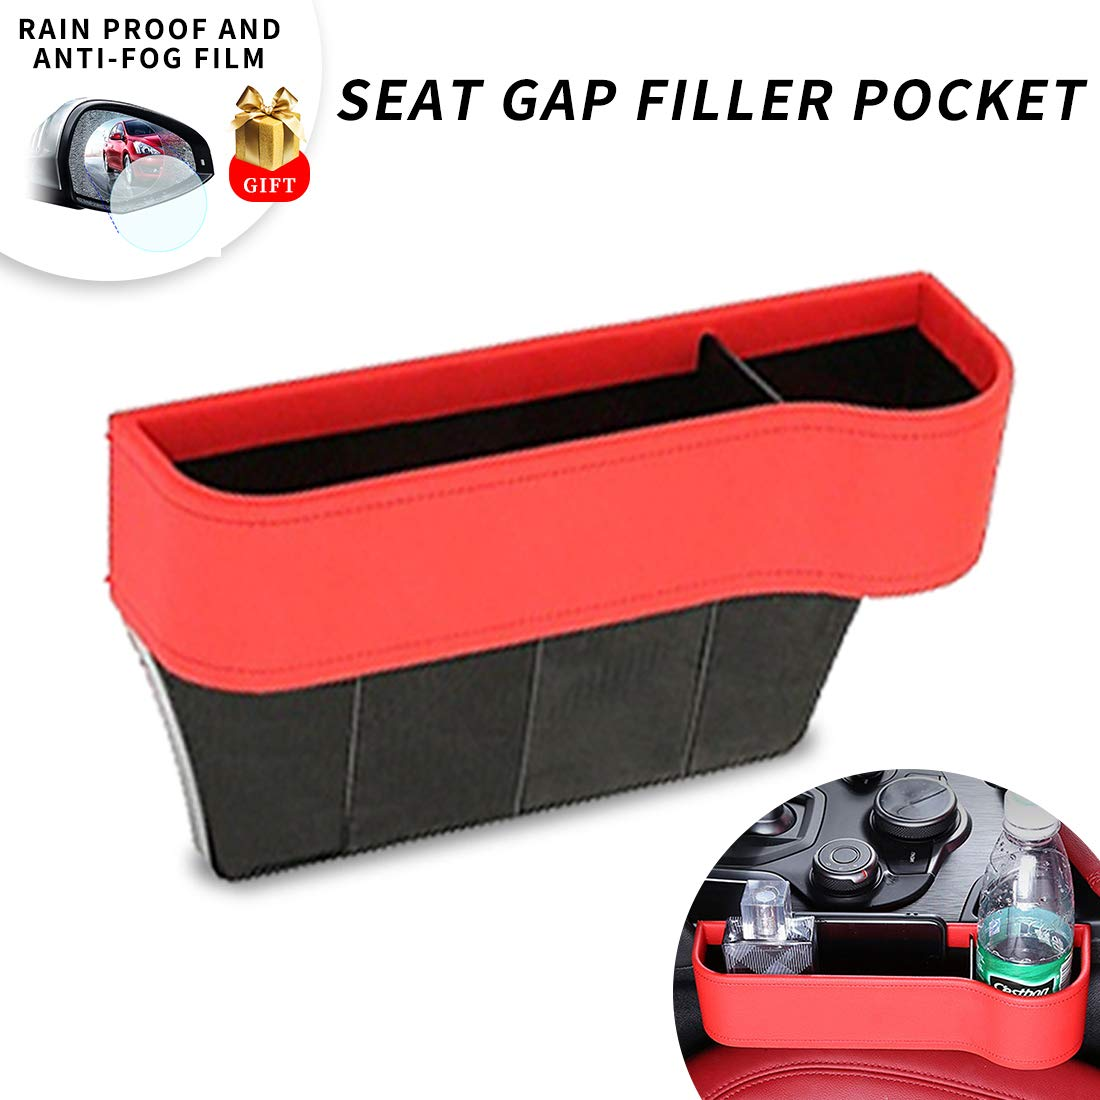 Center Console Side Pocket, PU Leather Car Seat Gap Filler Organizer Catcher with Cup Holder, Pack of 1 (Red)